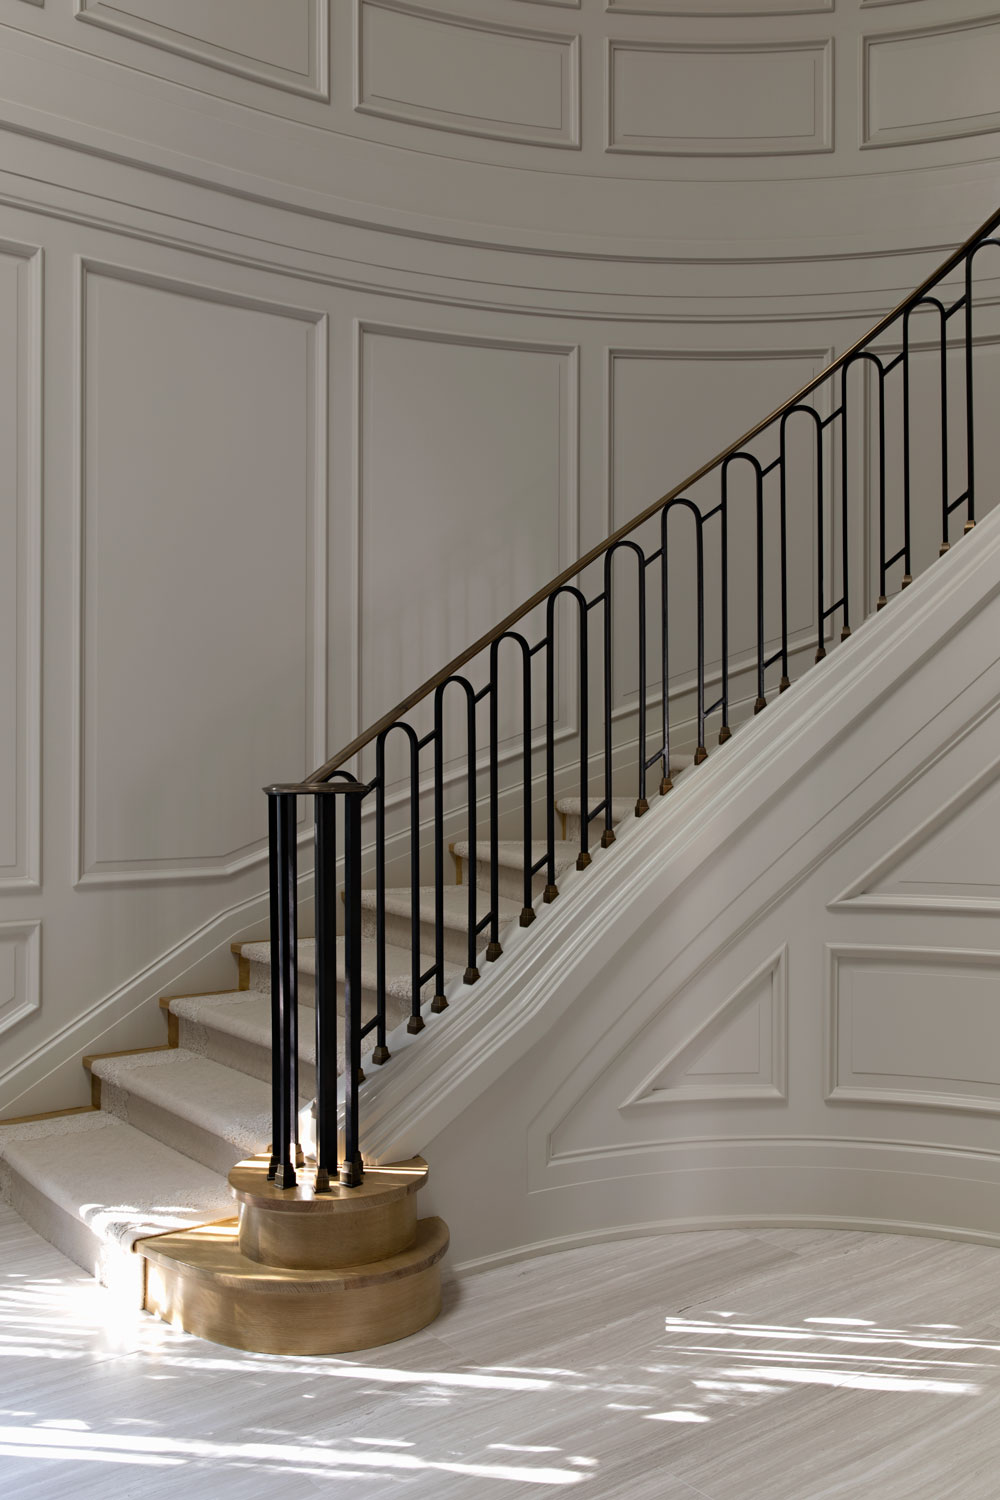 14-paneled-walls-staircase-modern-railing-gary-drake-general-contractor.jpg